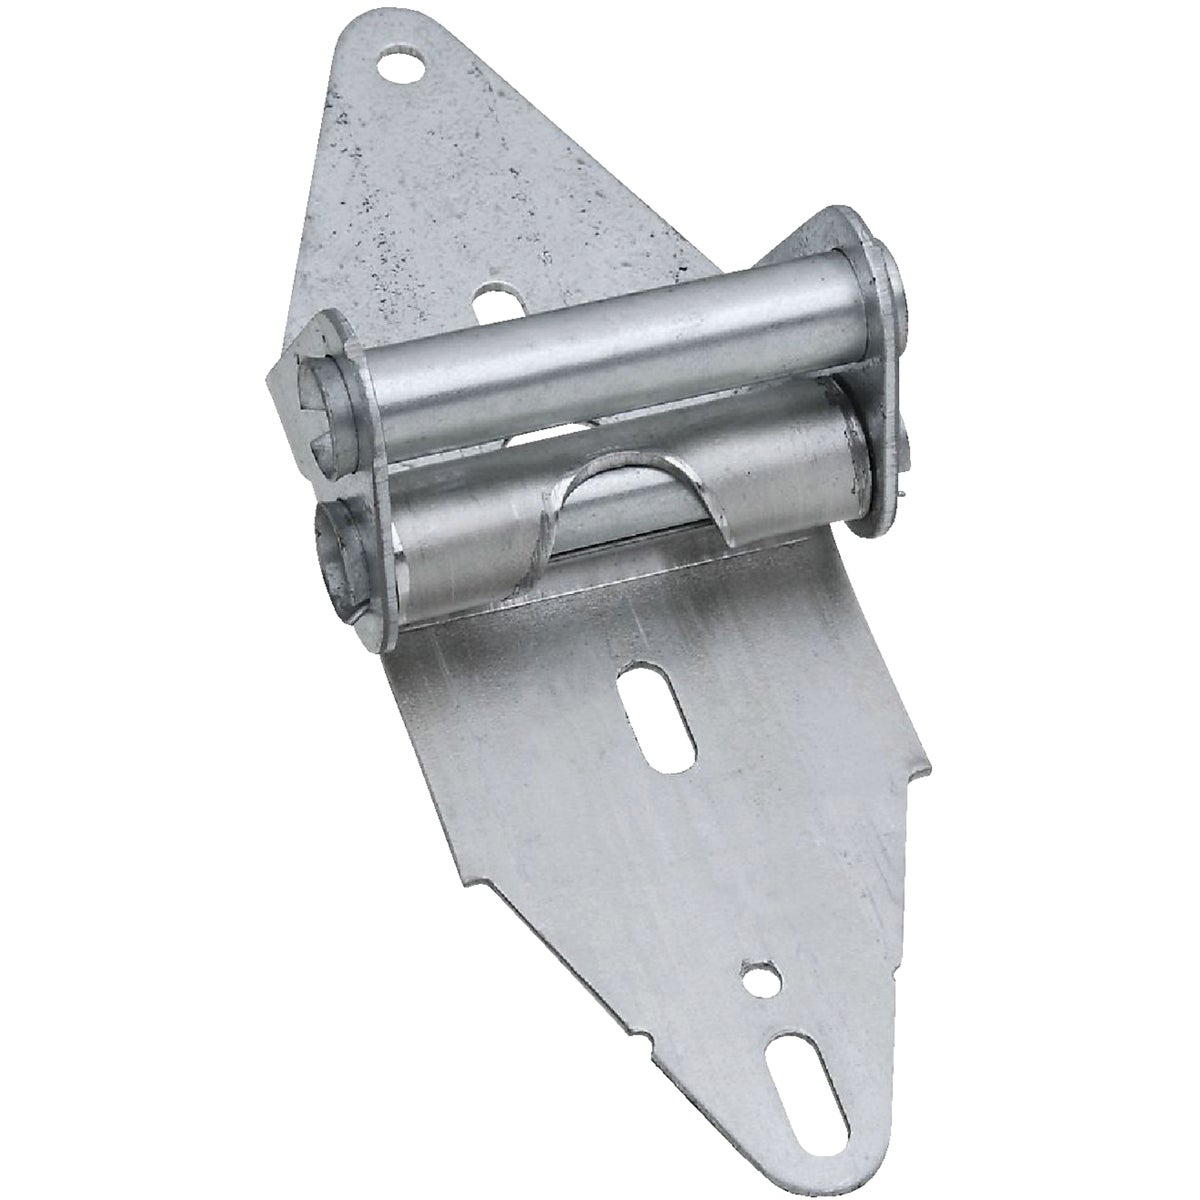 #4 HINGE W/BOLTS&NUTS - N280214 by National Mfg Co